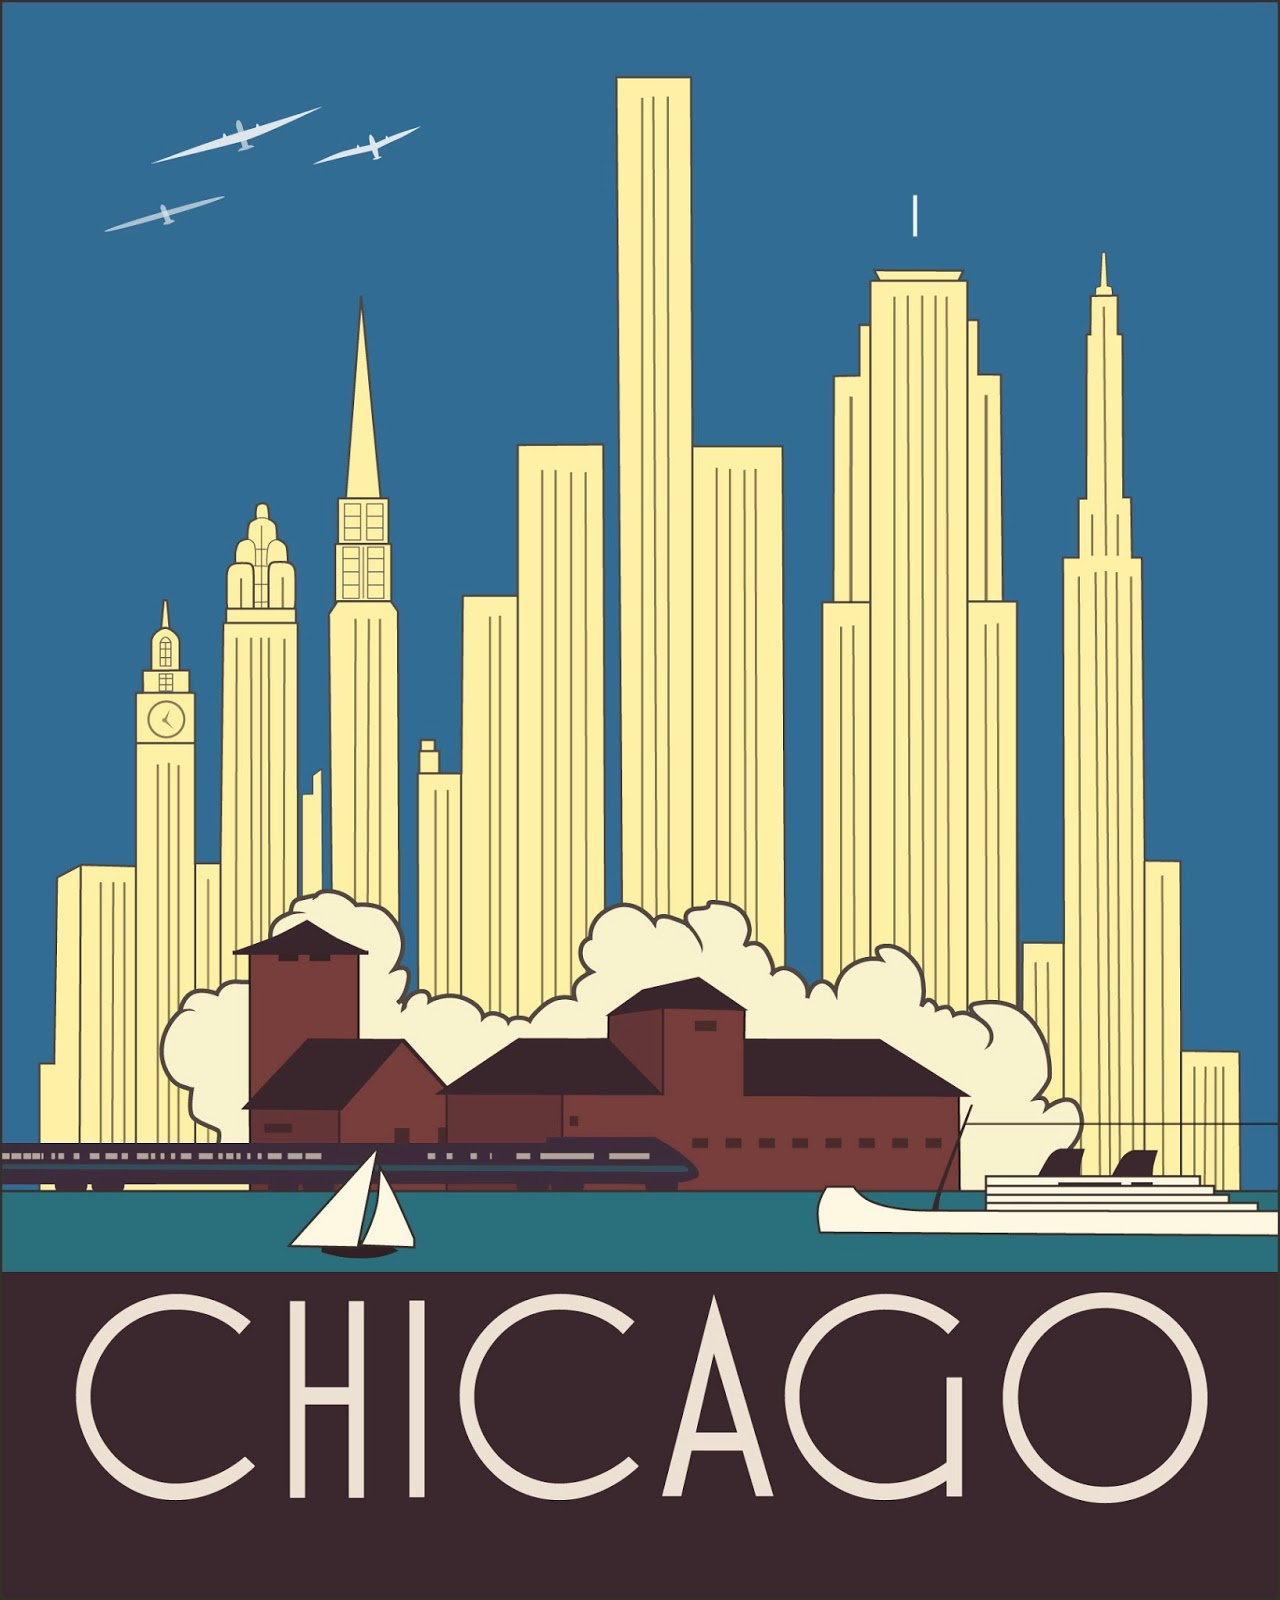 Chicago Art Deco Skyline Josef Spalenka Adobe Illustrator